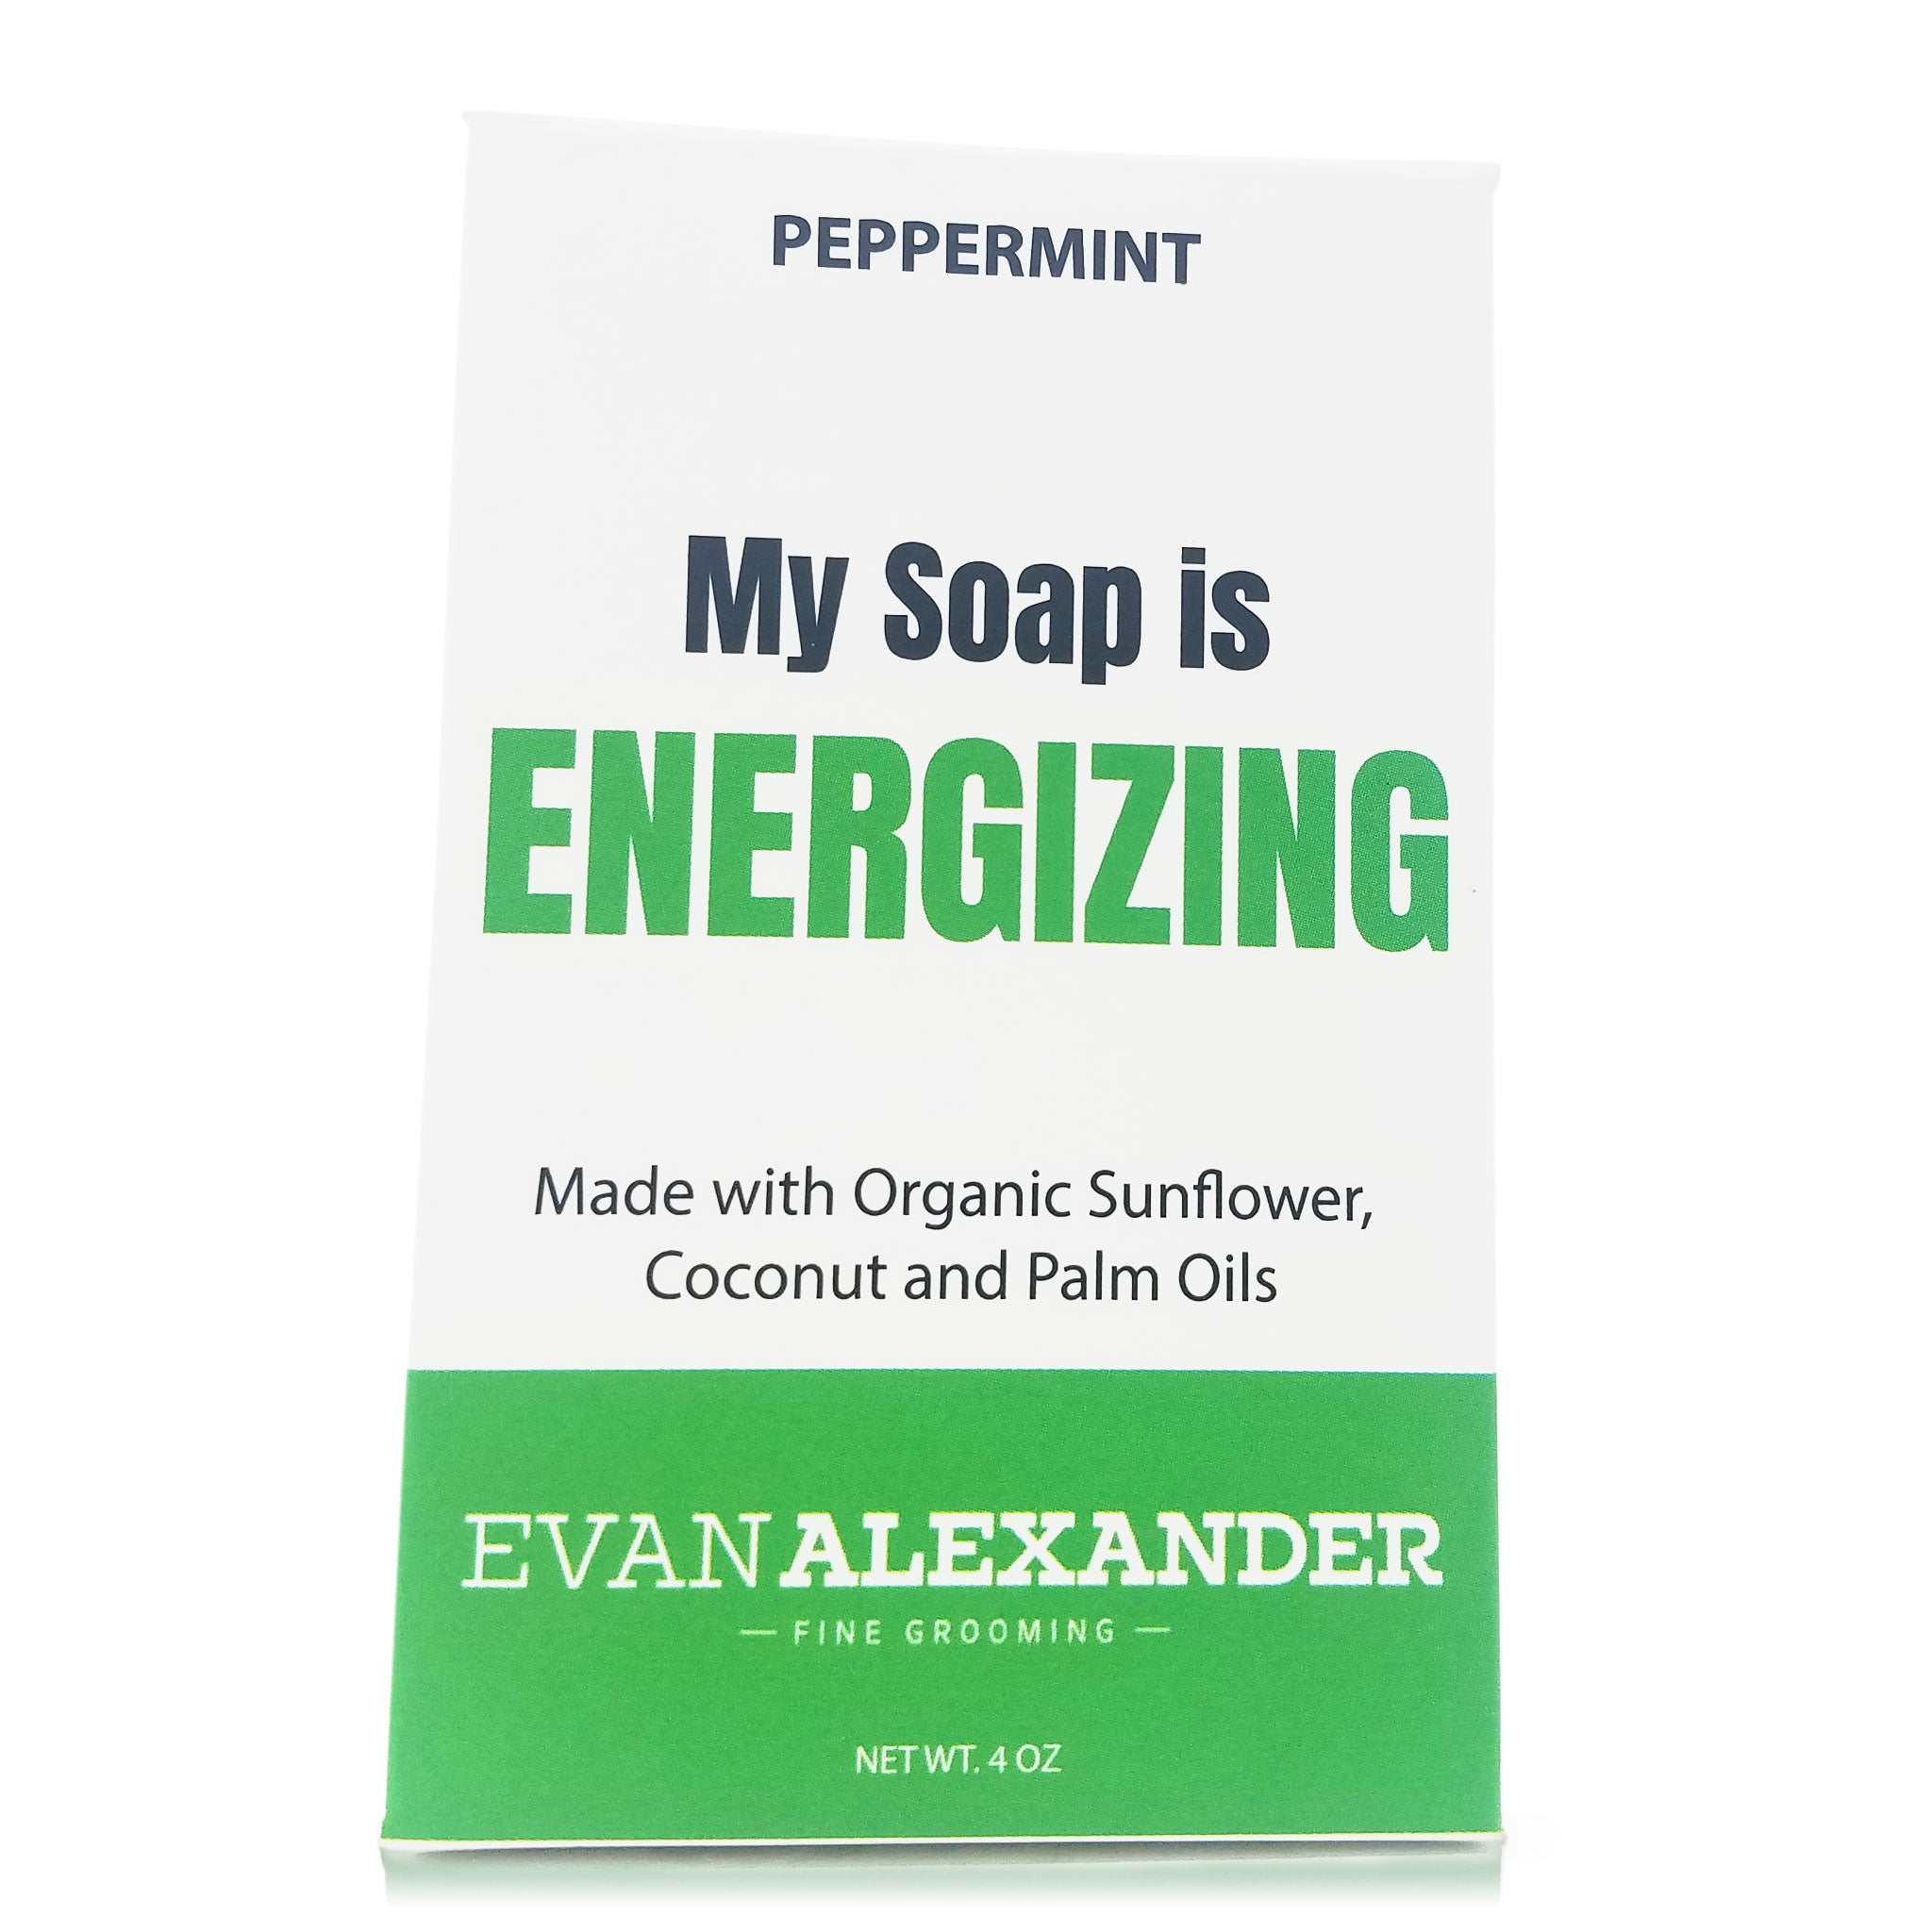 My Soap is Energizing